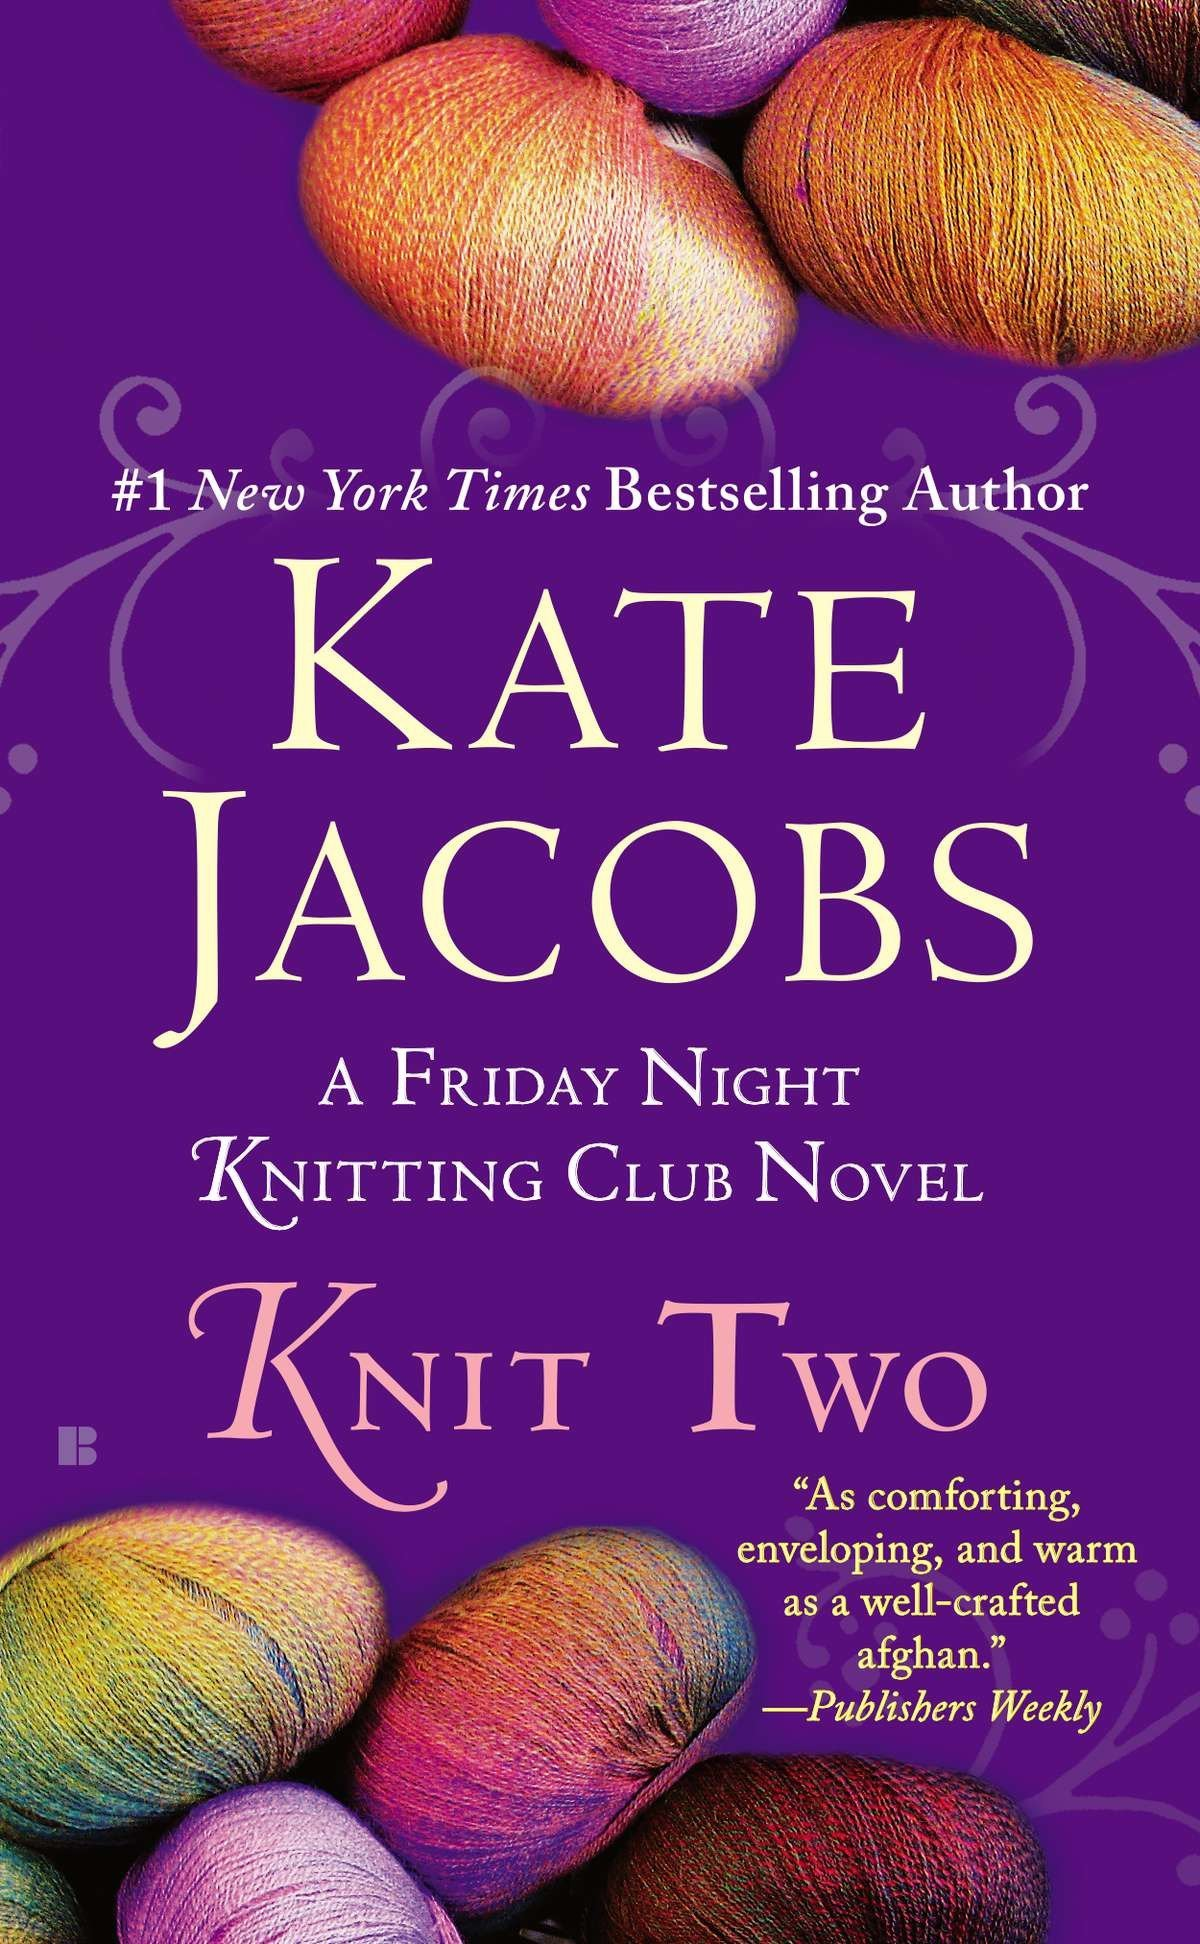 Knit Two Friday Night Knitting Club Series Kate Jacobs